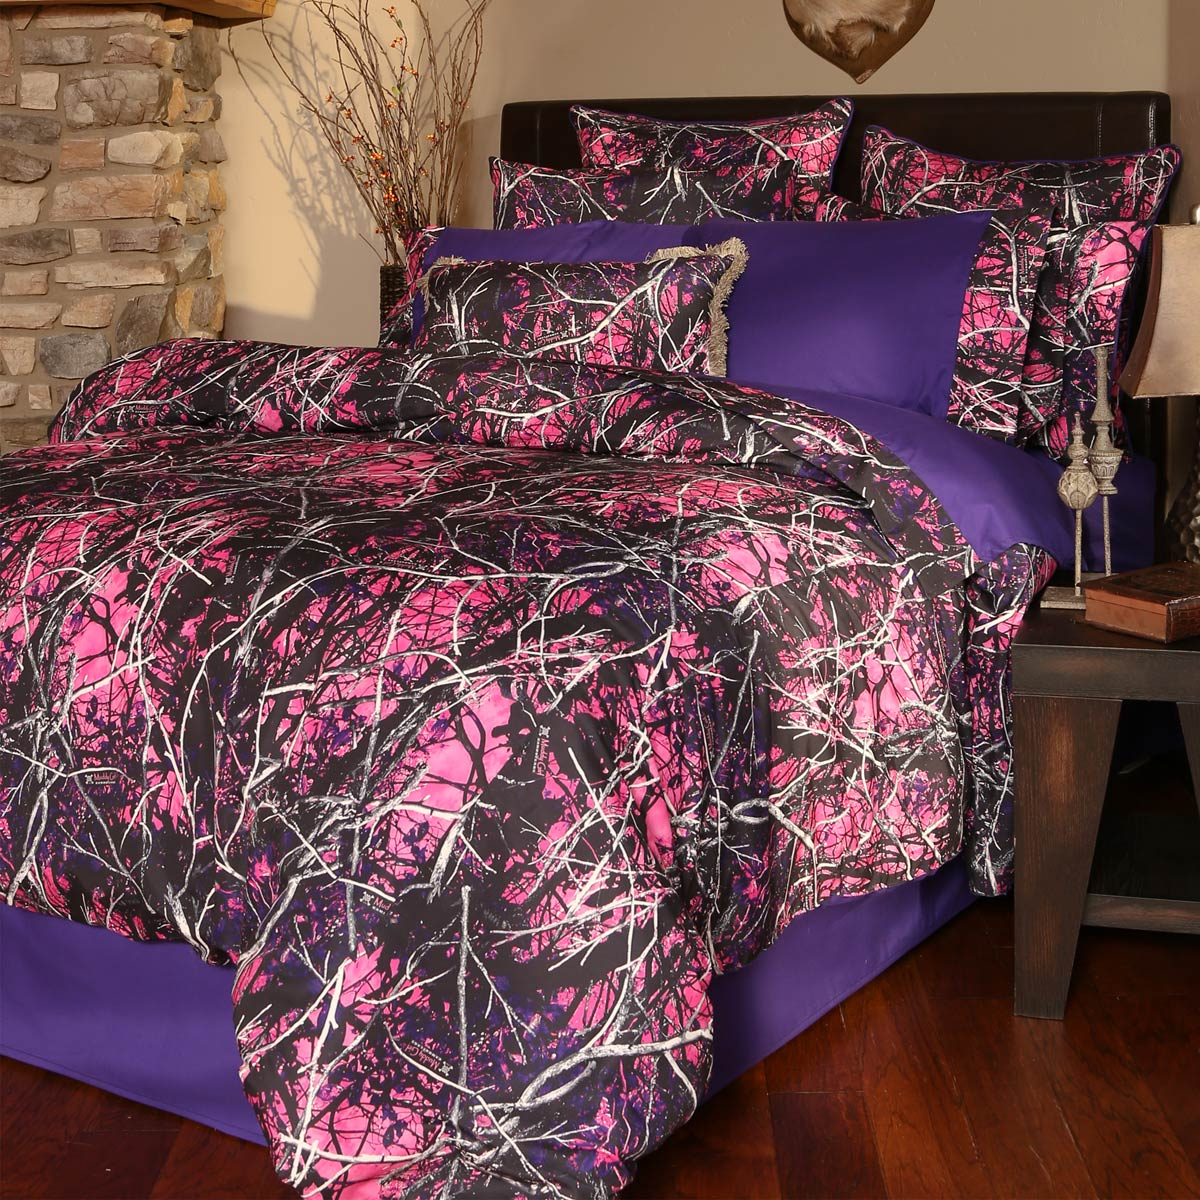 Black Forest Decor Muddy girl 3-piece twin bed set